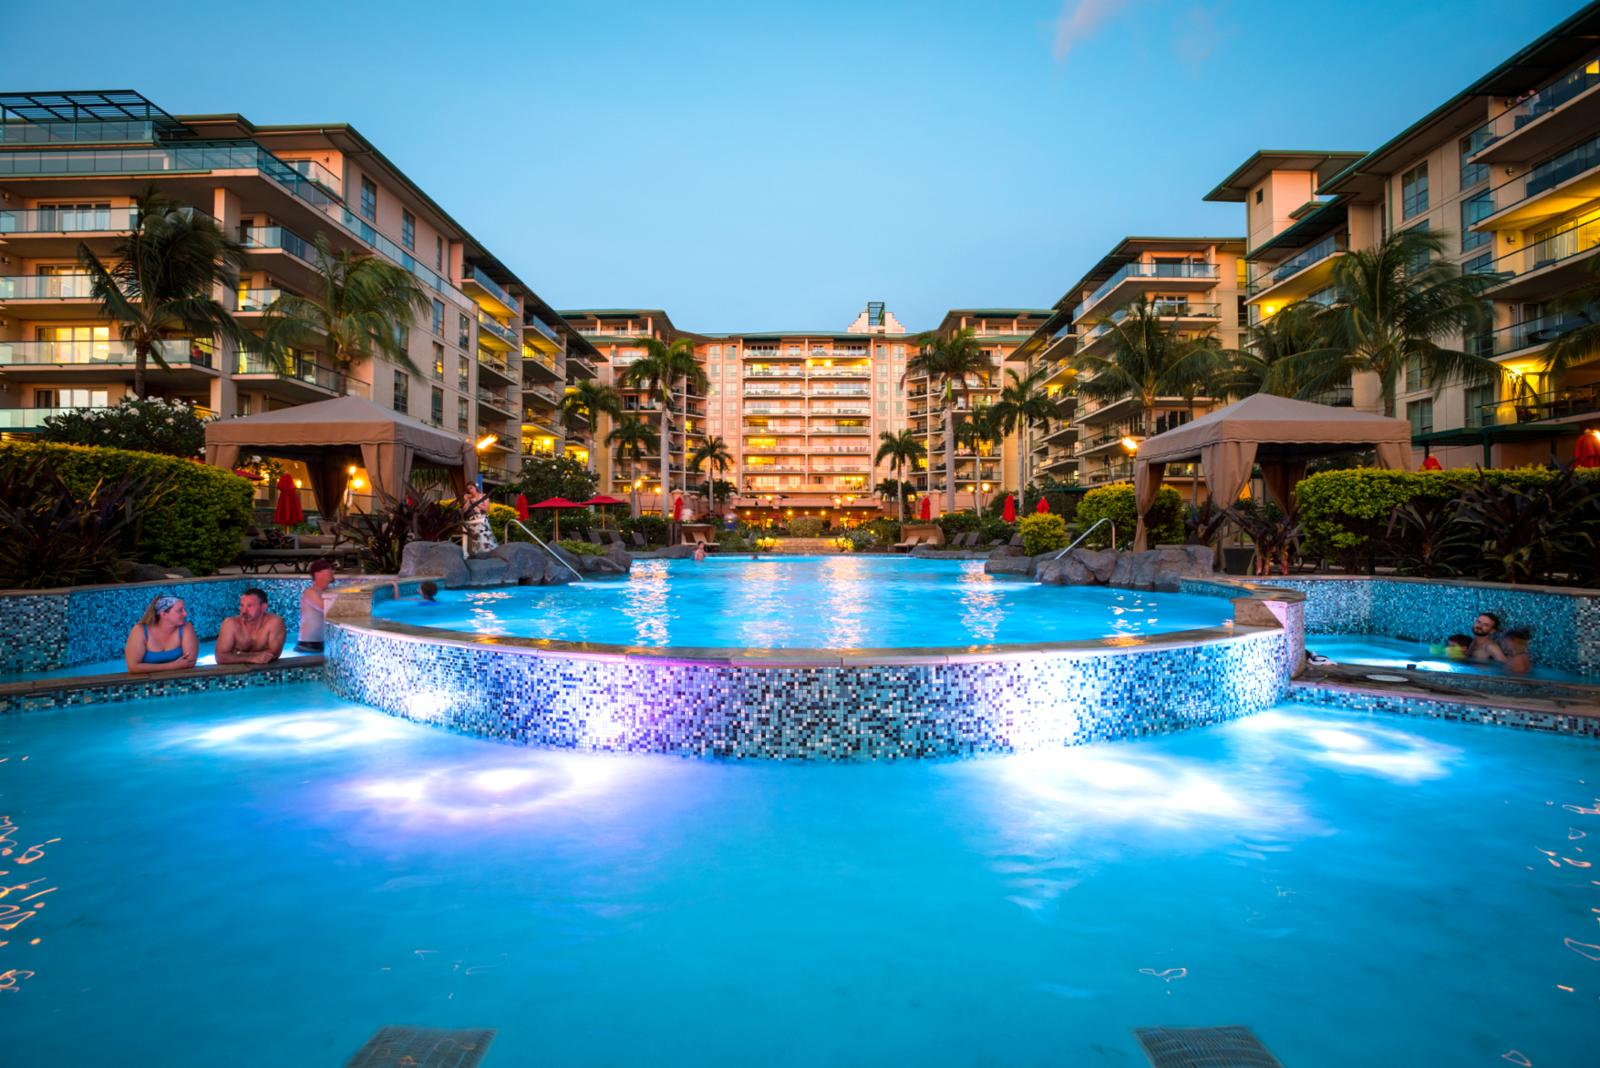 Honua Kai pool at night, lights up for a quick night dip in the pool!